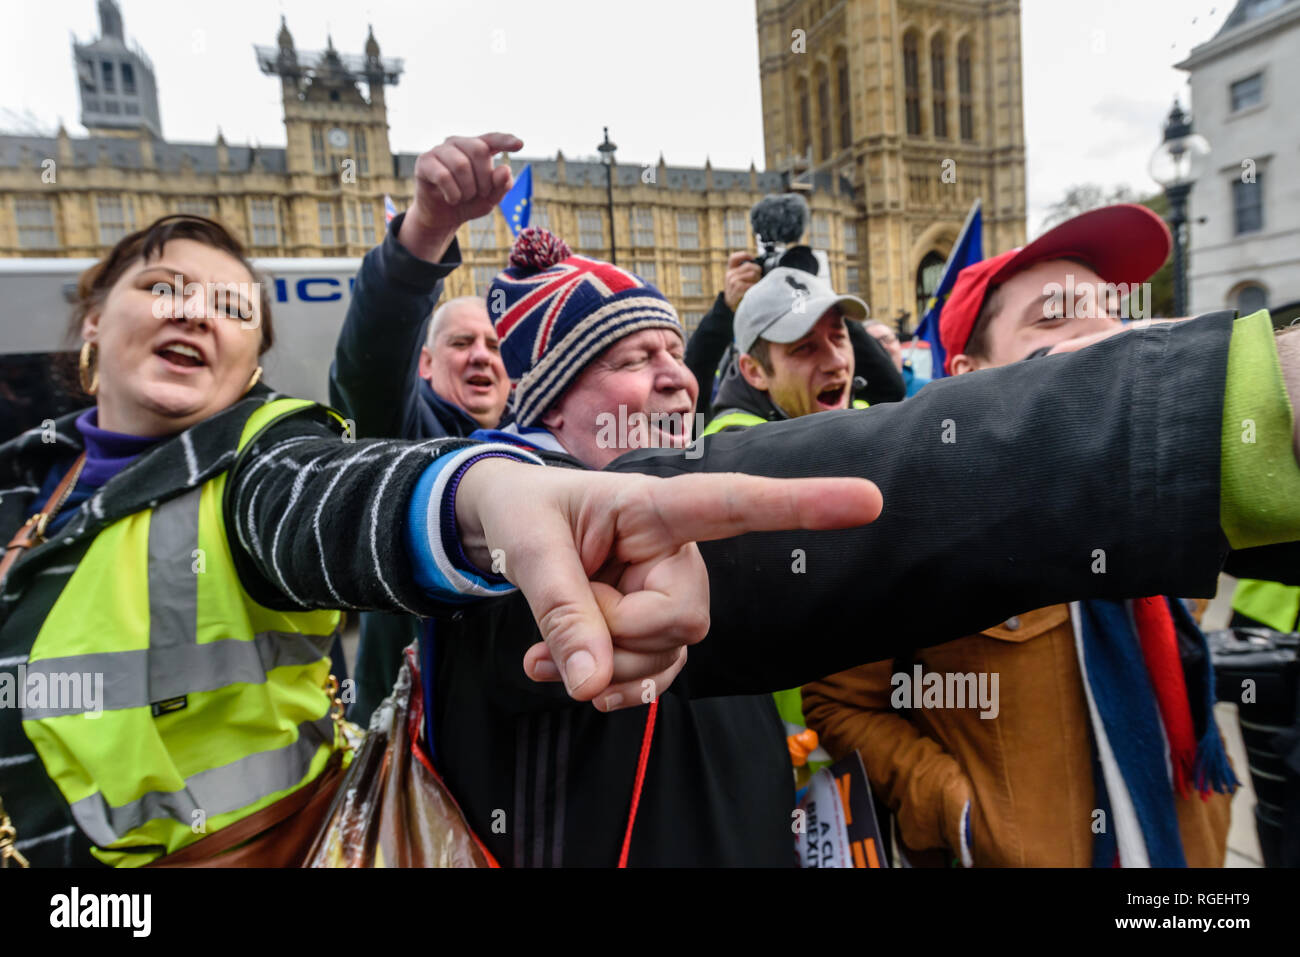 London, UK. 29th January 2019. Brexiteers point and shout at EU Supergirl Madeleina Kay who is singing.  On the day of more Brexit votes, protests around parliament continue, with Remainers waving EU flags, and Brexiteers holding signs leave means leave. A small group, some wearing yellow jackets came to shout at the Remainers, calling them traitors. Away from this there were a few more reasoned arguments, and others making their points with various costumes. Credit: Peter Marshall/Alamy Live News - Stock Image